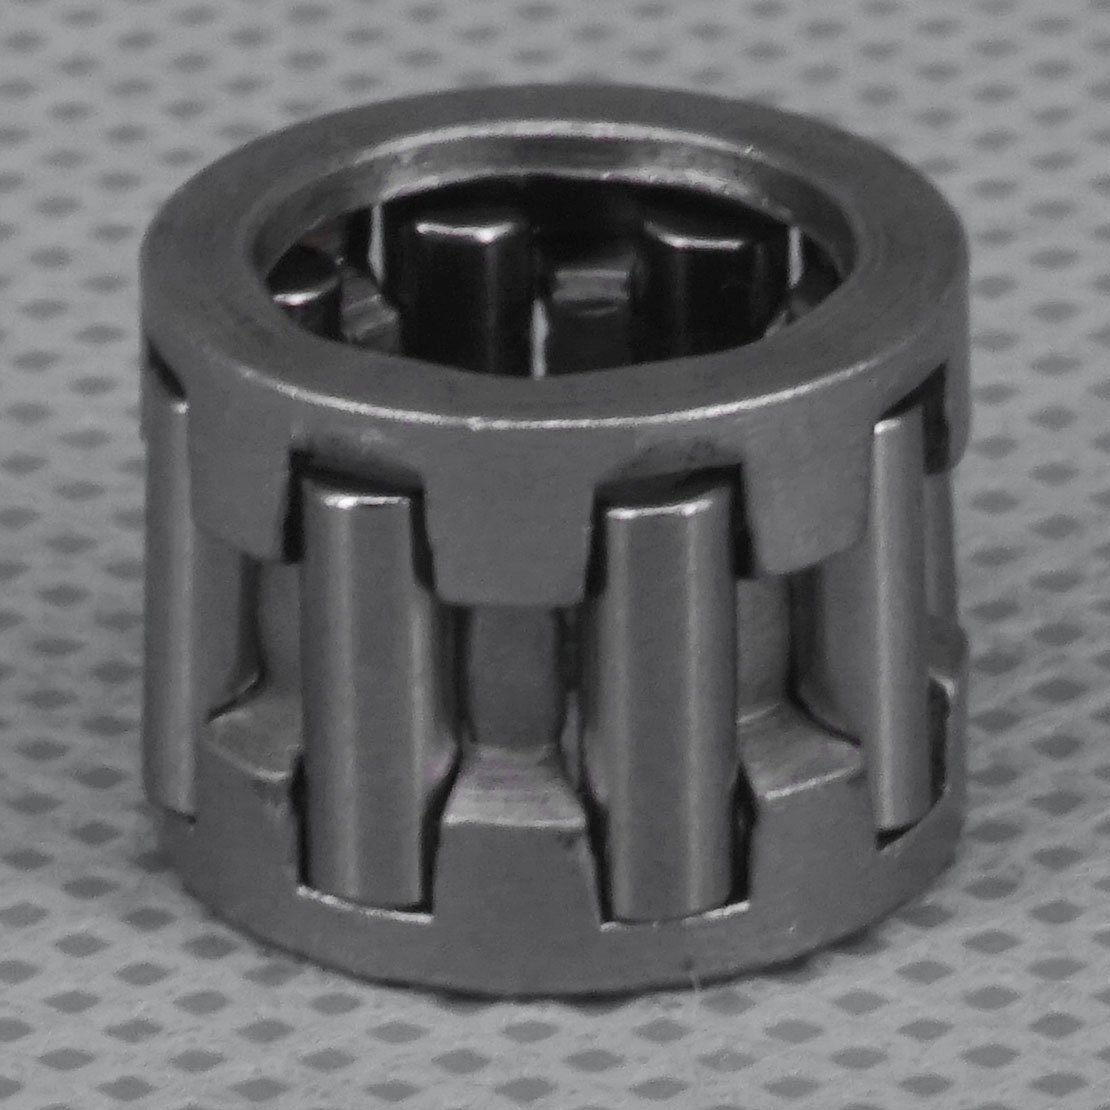 LETAOSK New Clutch Needle Cage Bearing Fit For Stihl MS361 044 046 MS440 MS460 Chainsaw